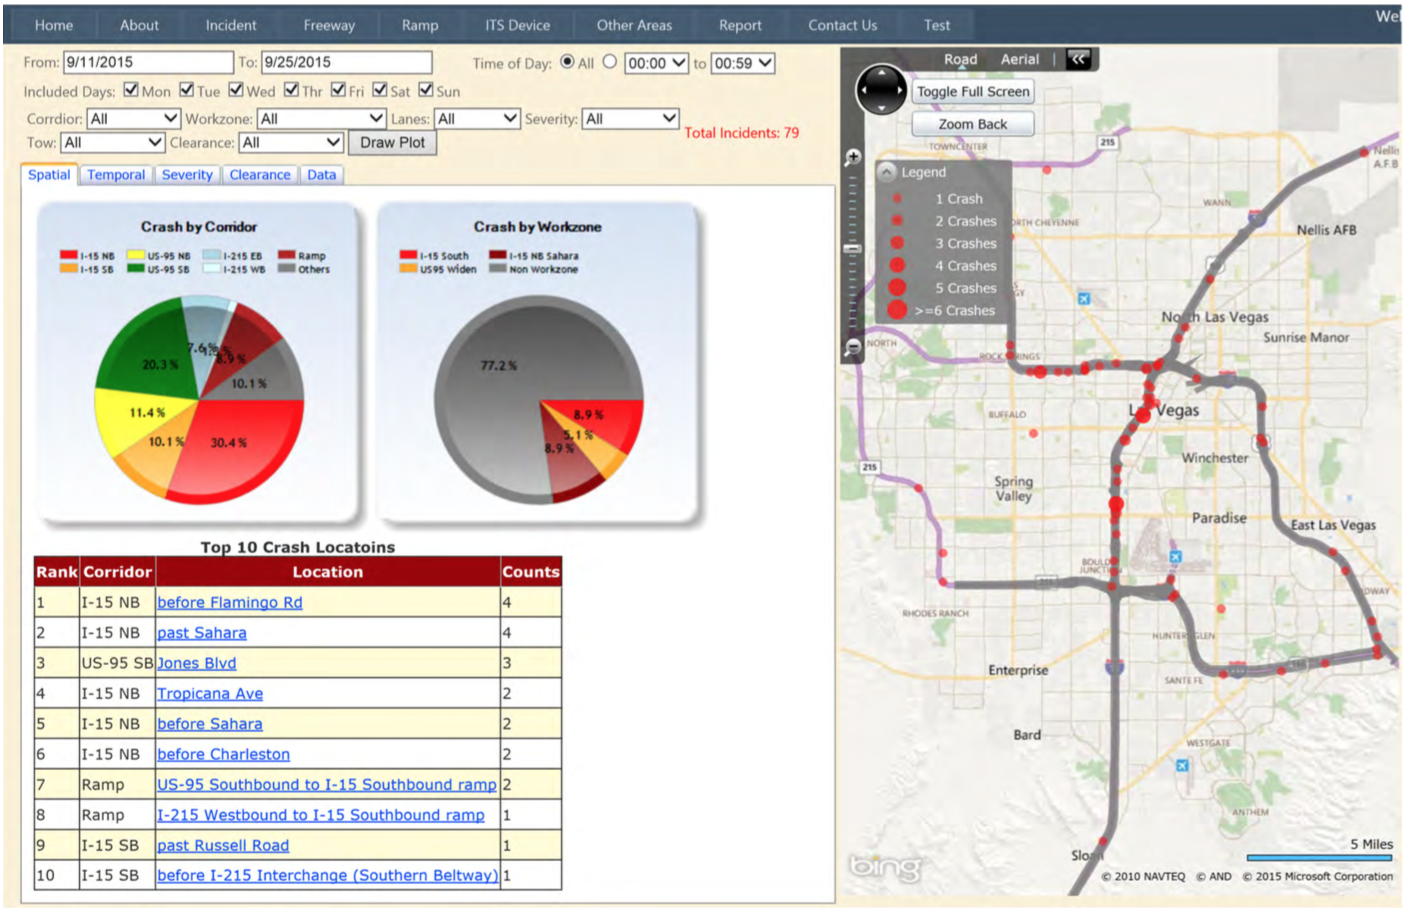 Screenshot of crash analysis by corridor on the FAST system including map, top 10 crash locations, crashes by corridor, and other data.